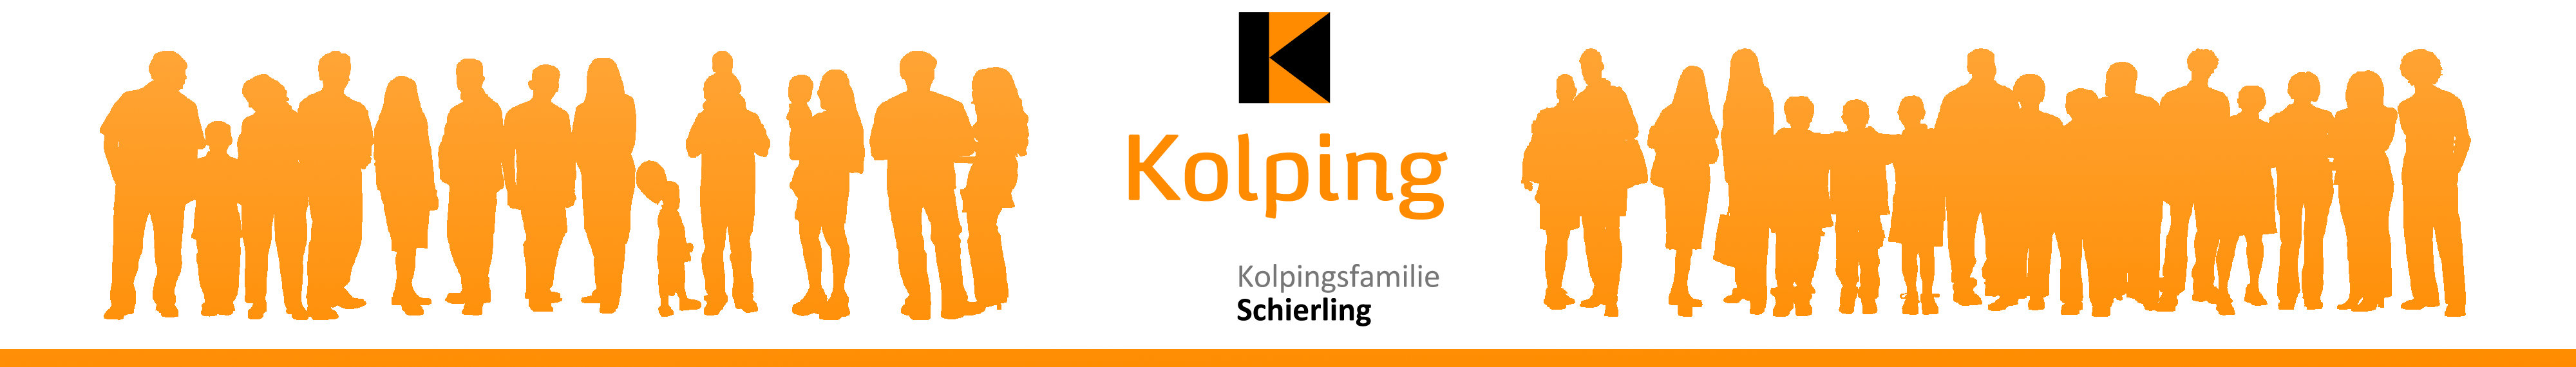 Kolping Schierling